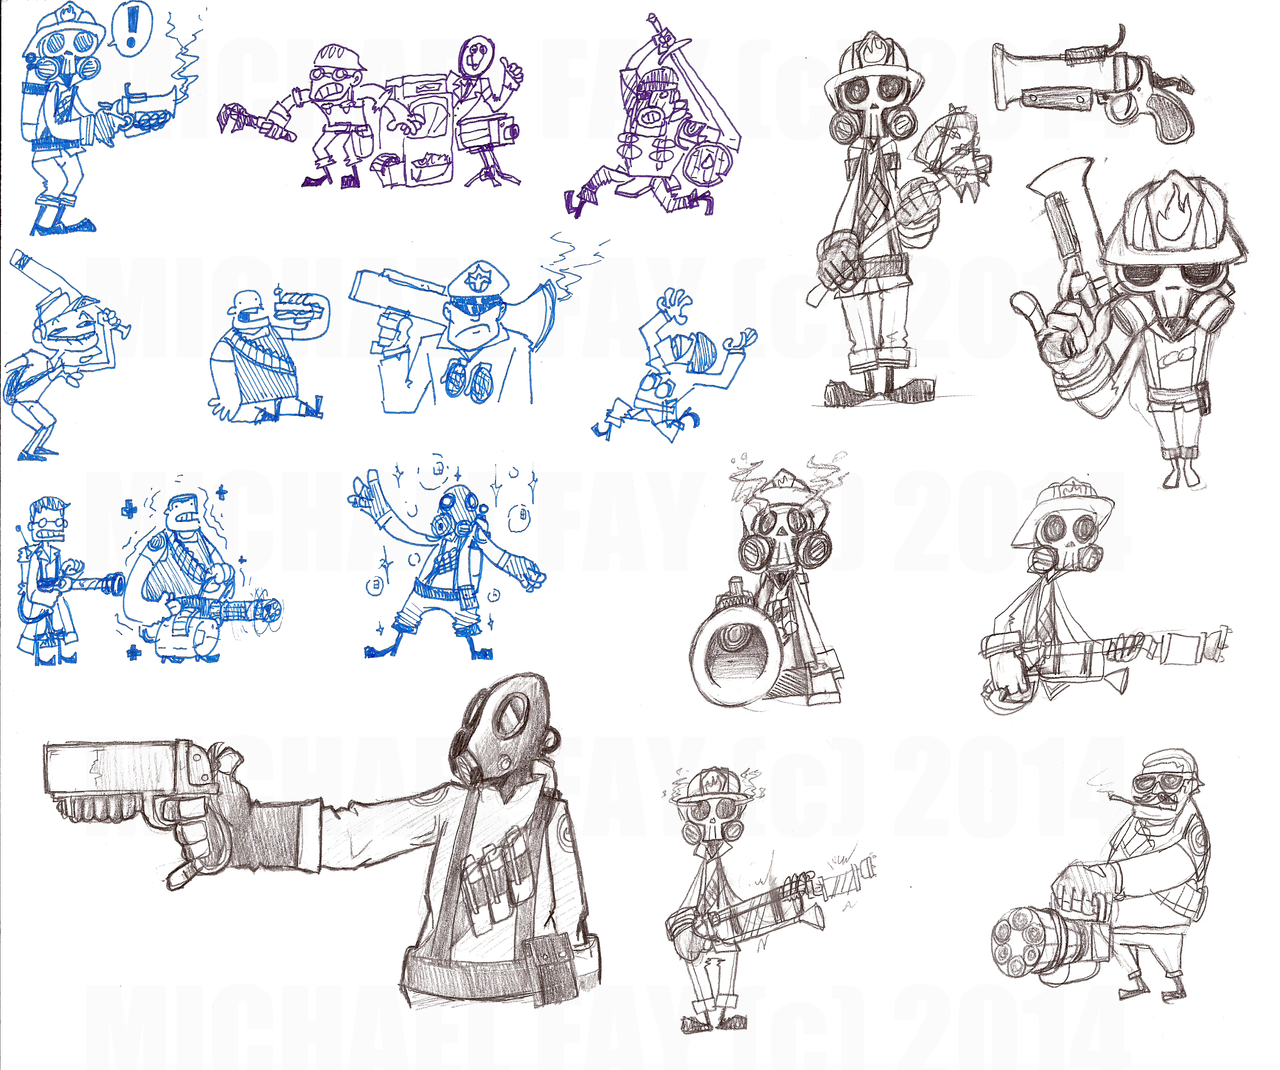 Team Fortress Class Doodles by MichaelFay